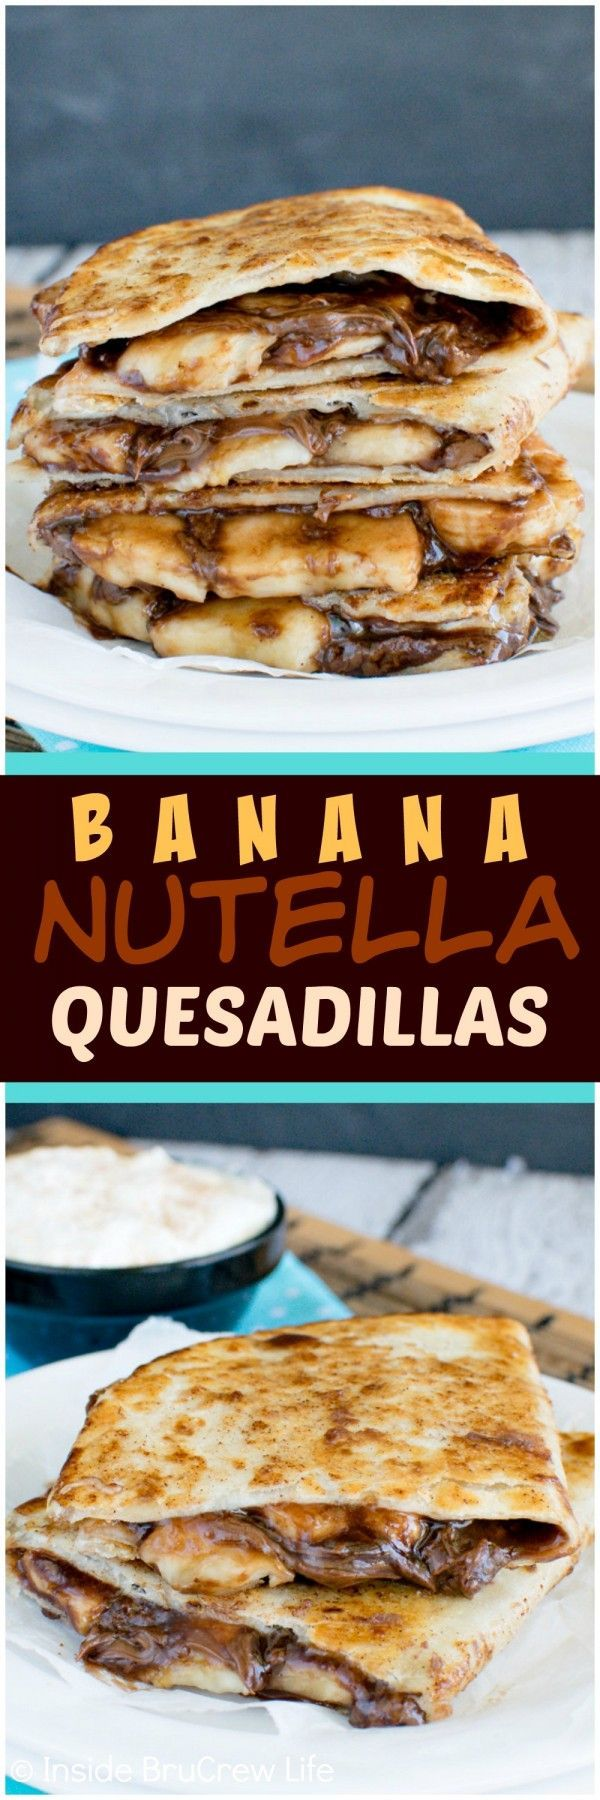 Banana Nutella Quesadillas - cinnamon sugar tortillas filled with banana slices…